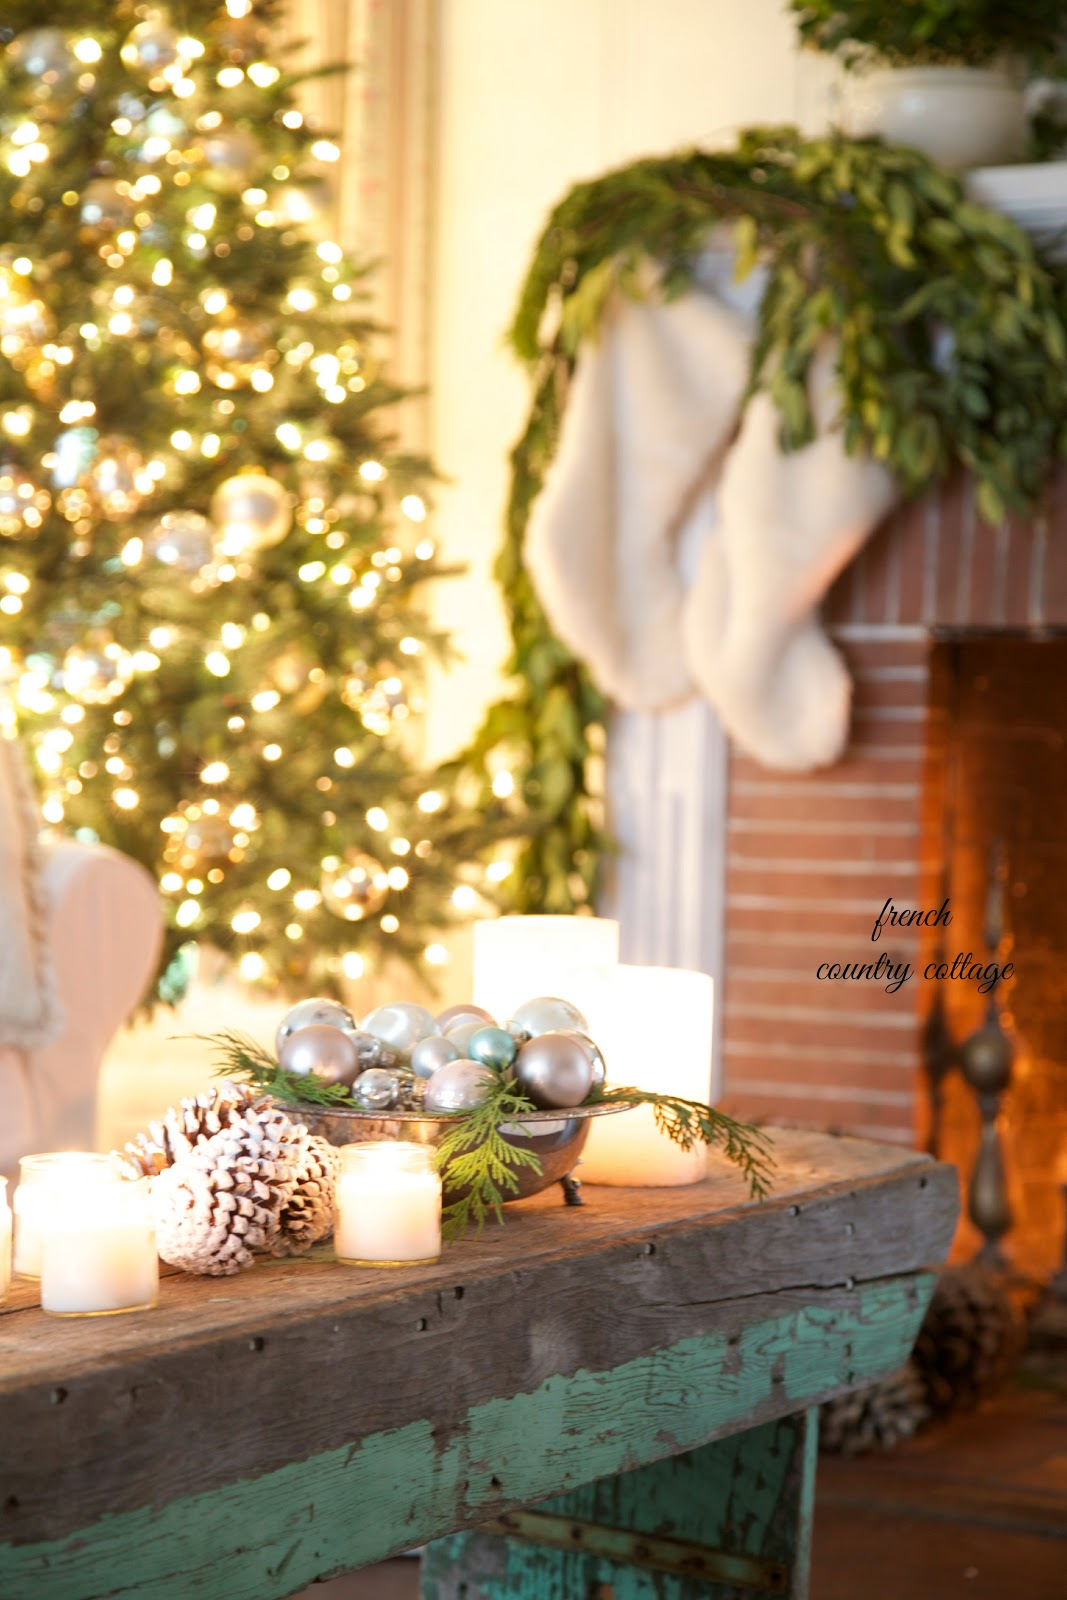 Beautiful Christmas setting in the Living Room from French Country Cottage | Friday Christmas Favorites at www.andersonandgrant.com